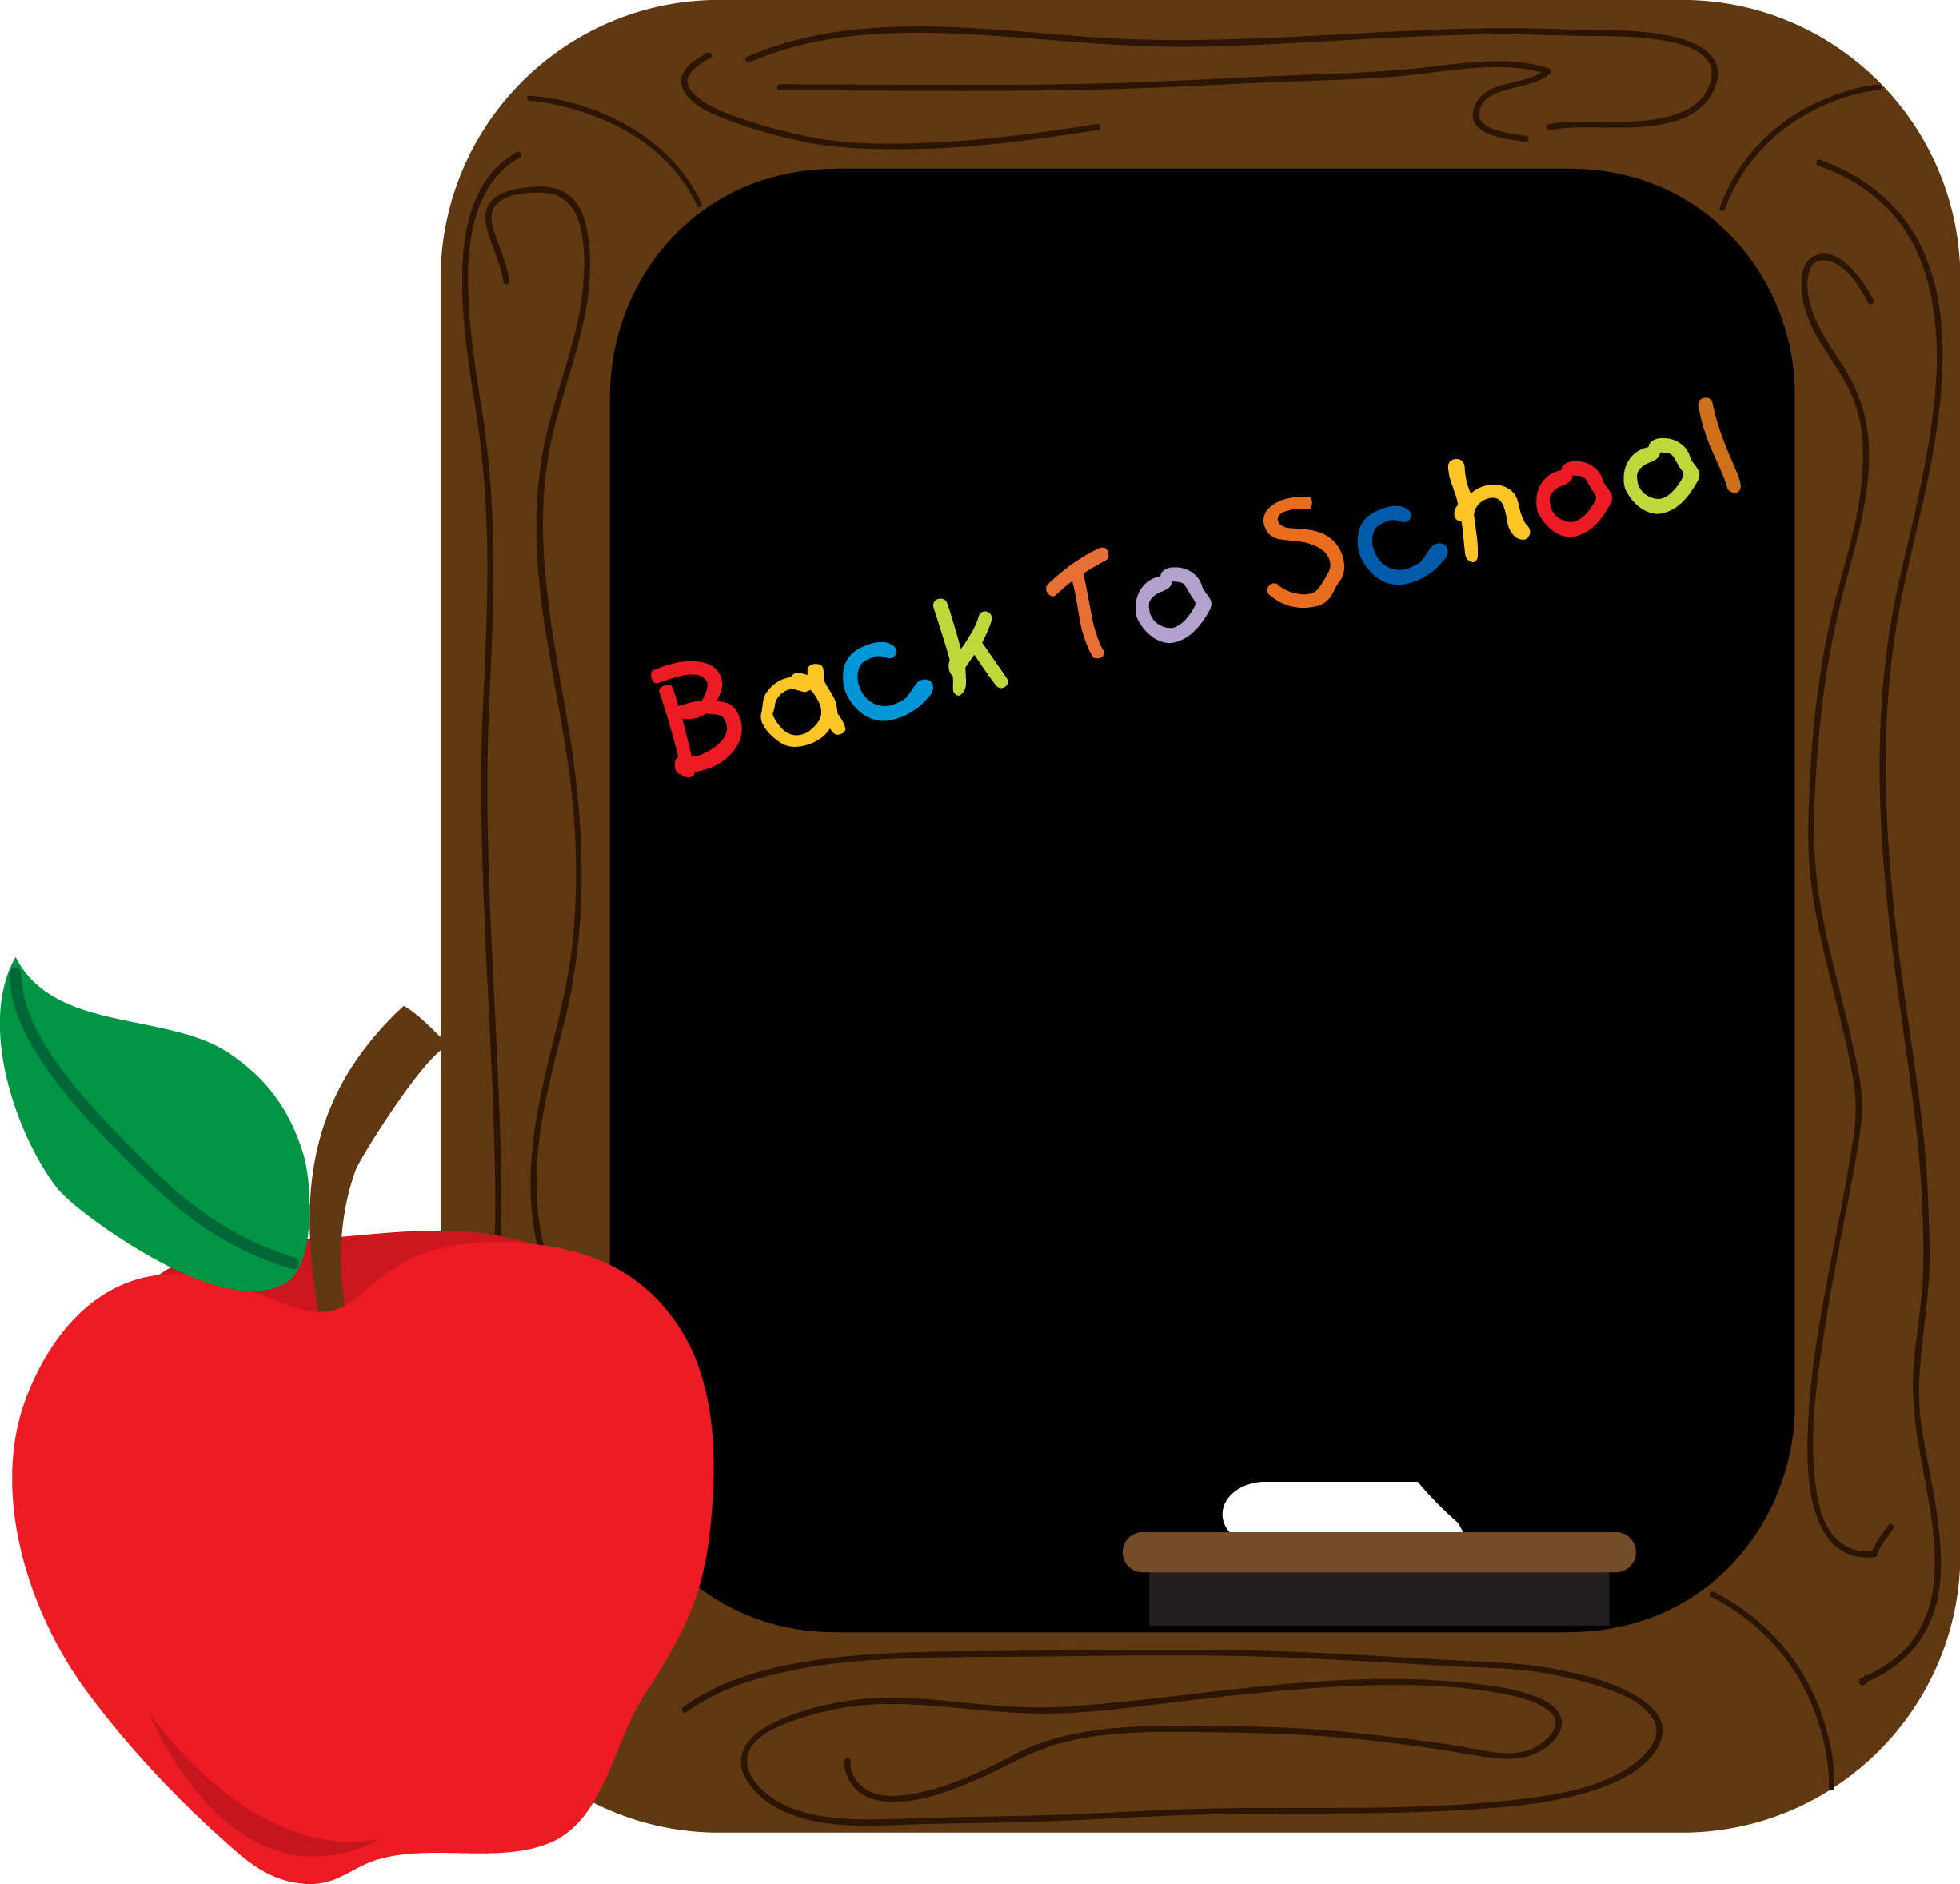 Chalkboard Clipart Free Clipart Images 2-Chalkboard clipart free clipart images 2-9